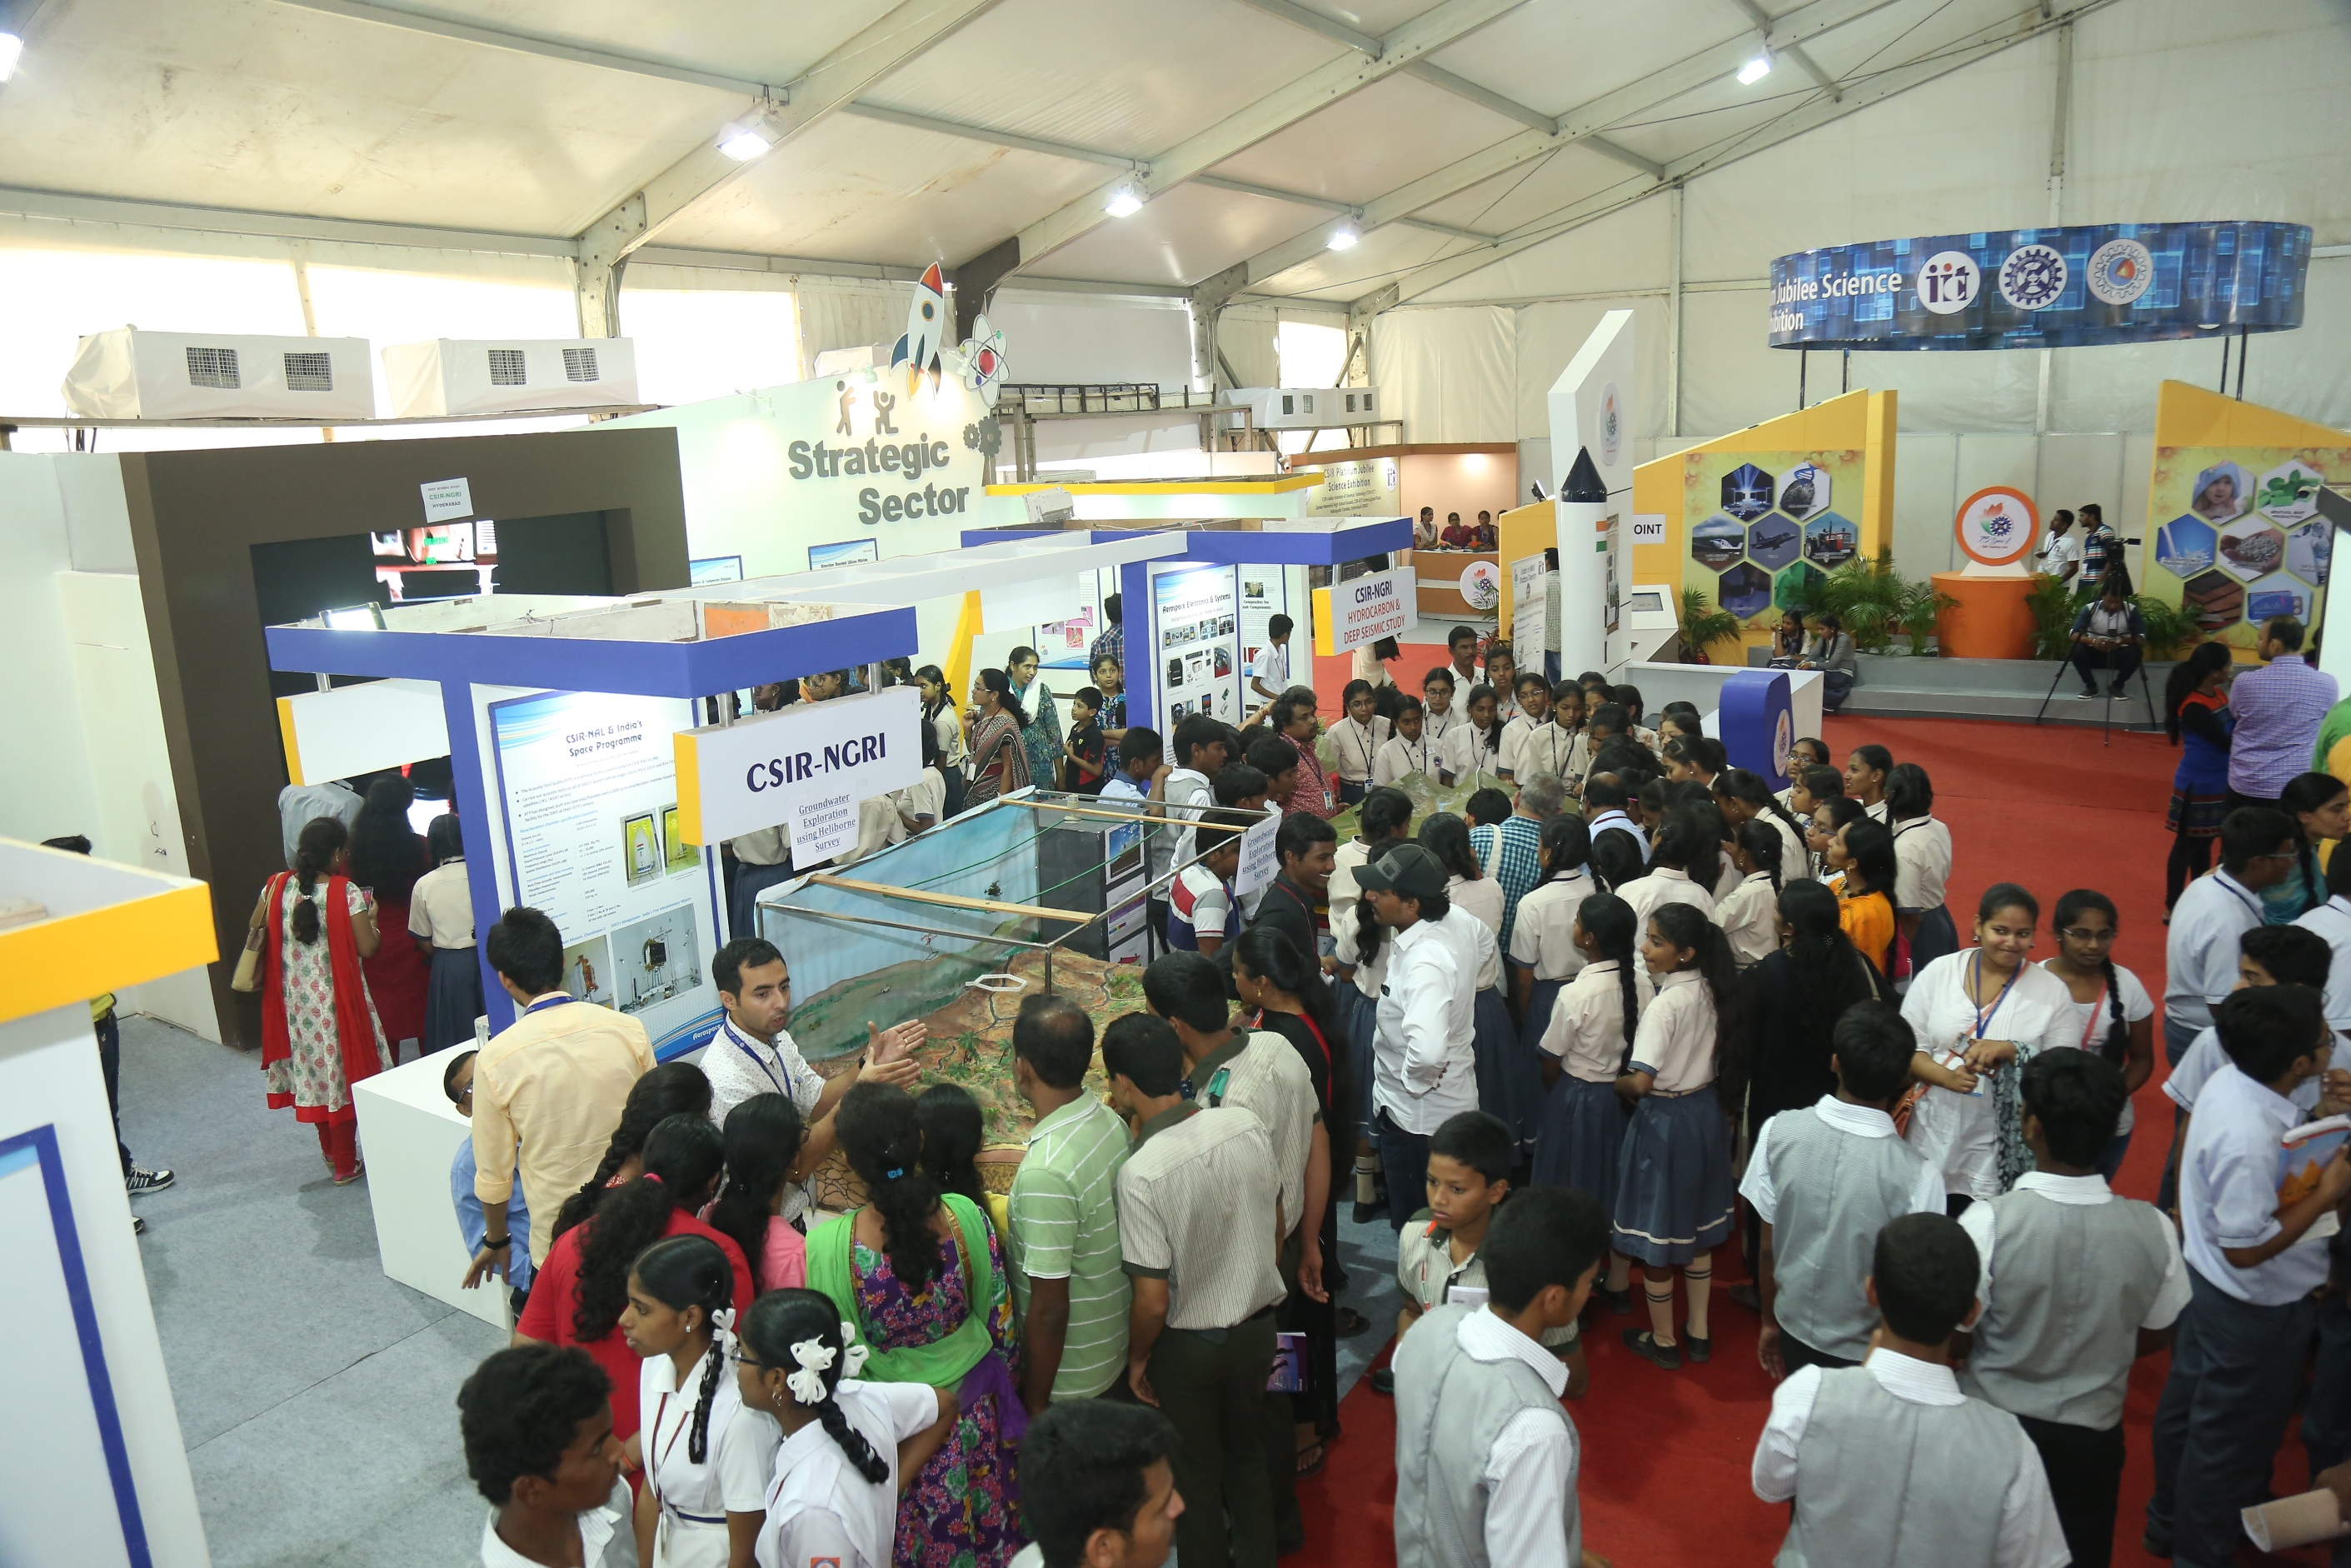 Outreach events for showcasing Geoscience opportunities for youngsters and public